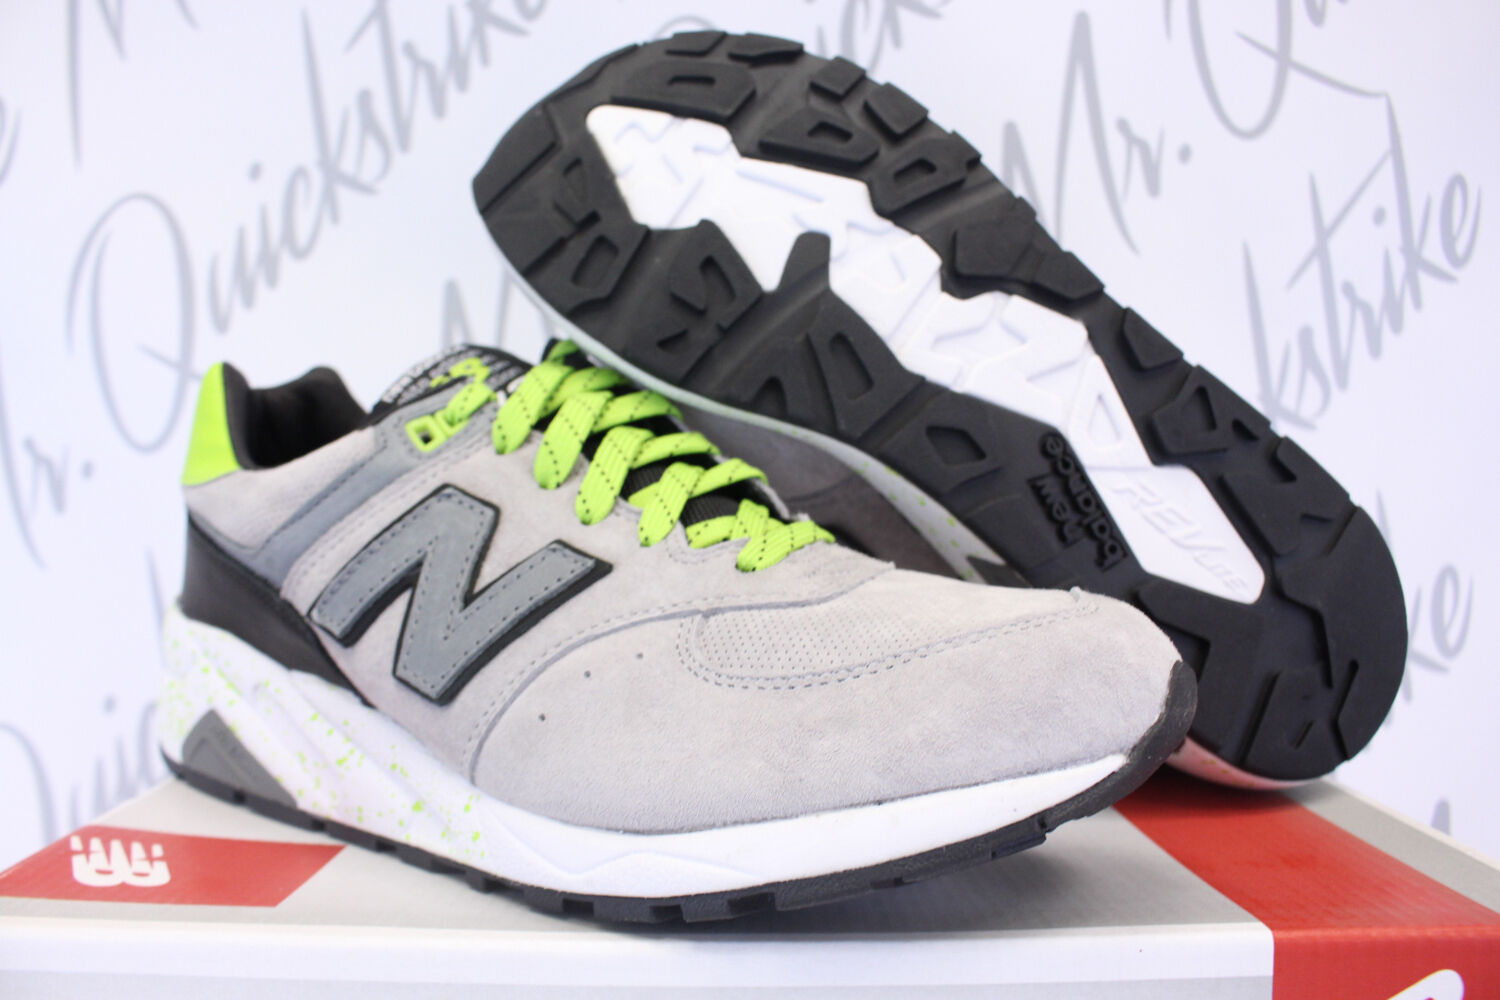 huge selection of 56321 99c1f NEW BALANCE 572 SZ 11 ELITE EDITION HALLOWEEN PACK grau grau grau NEON Grün  MRT572GG a51888